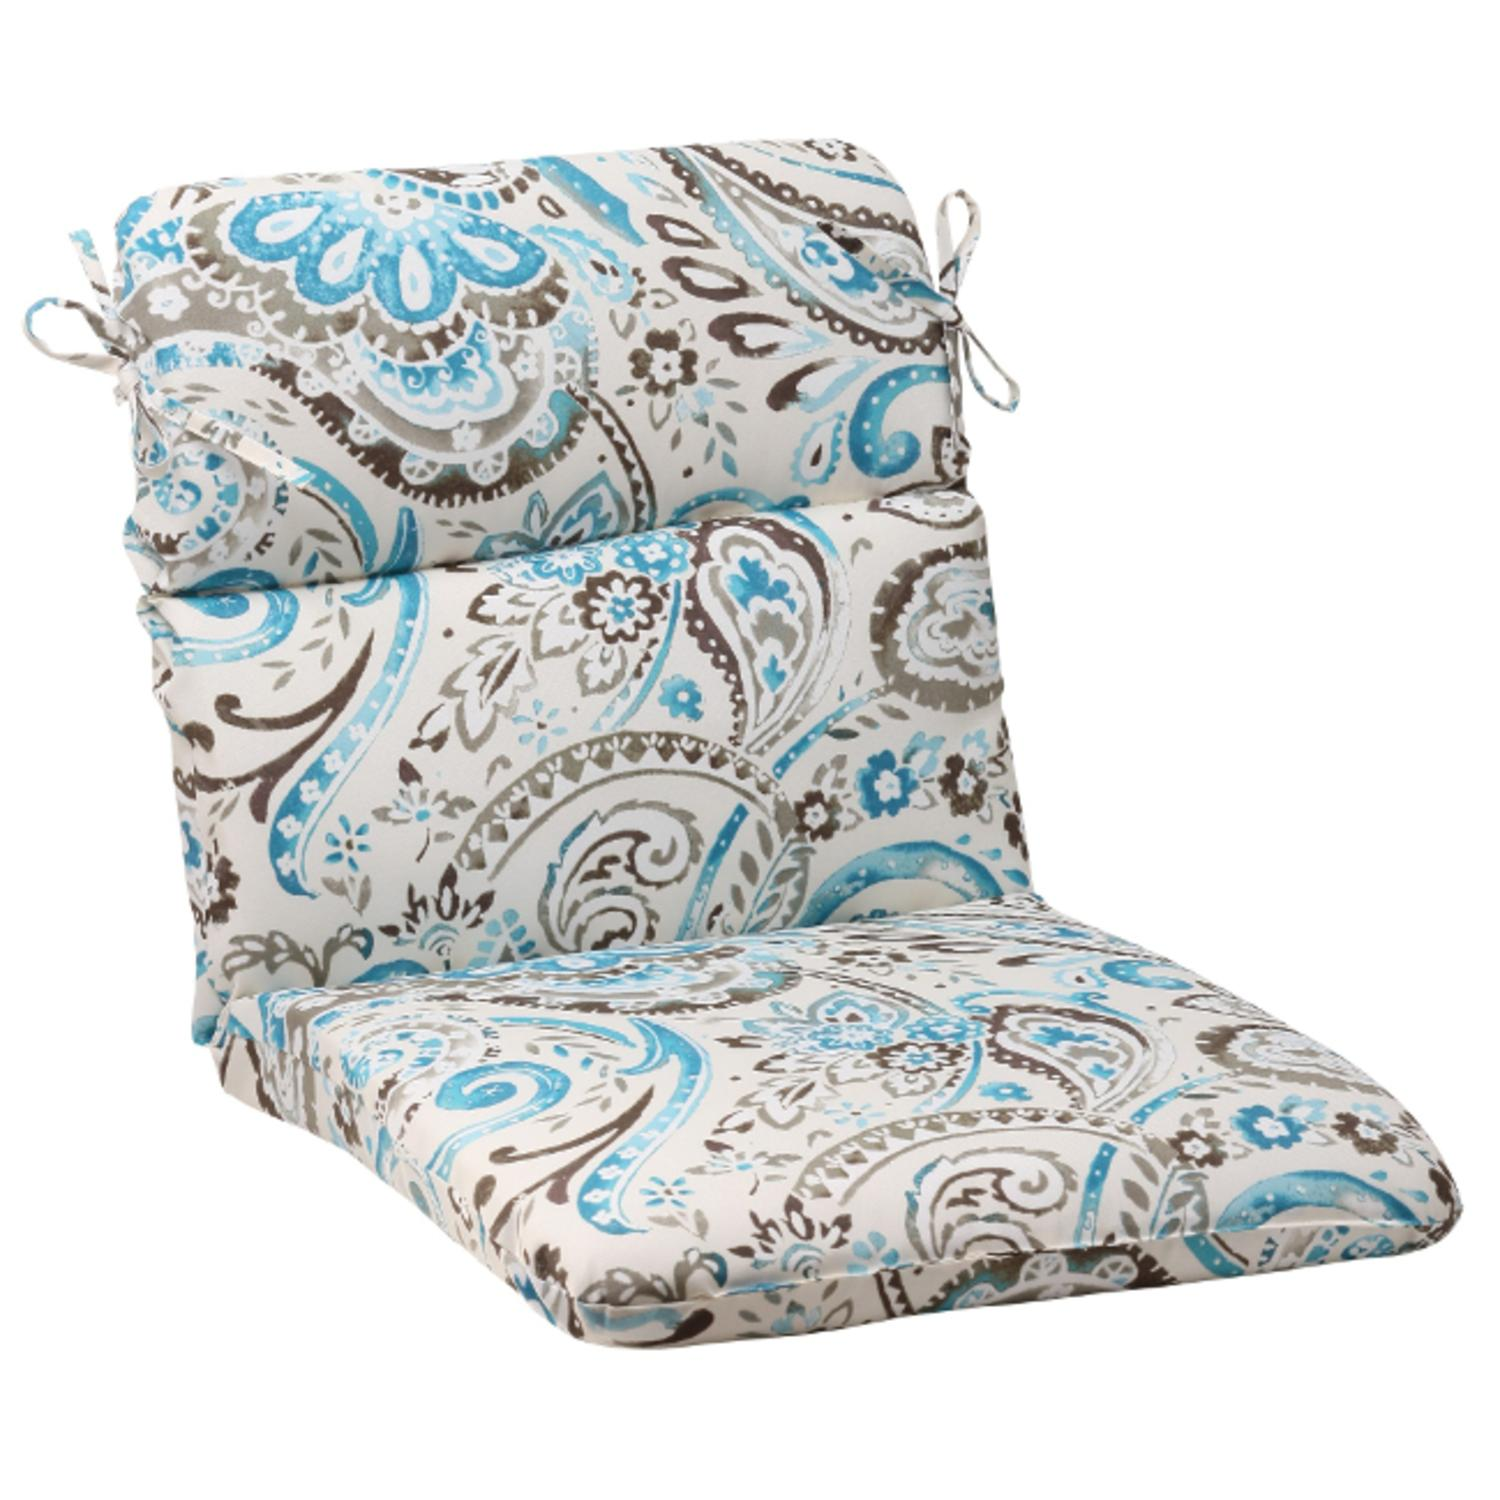 "40.5"" Turquoise & Gray Paisley Swirl Outdoor Patio Round Chair Cushion"